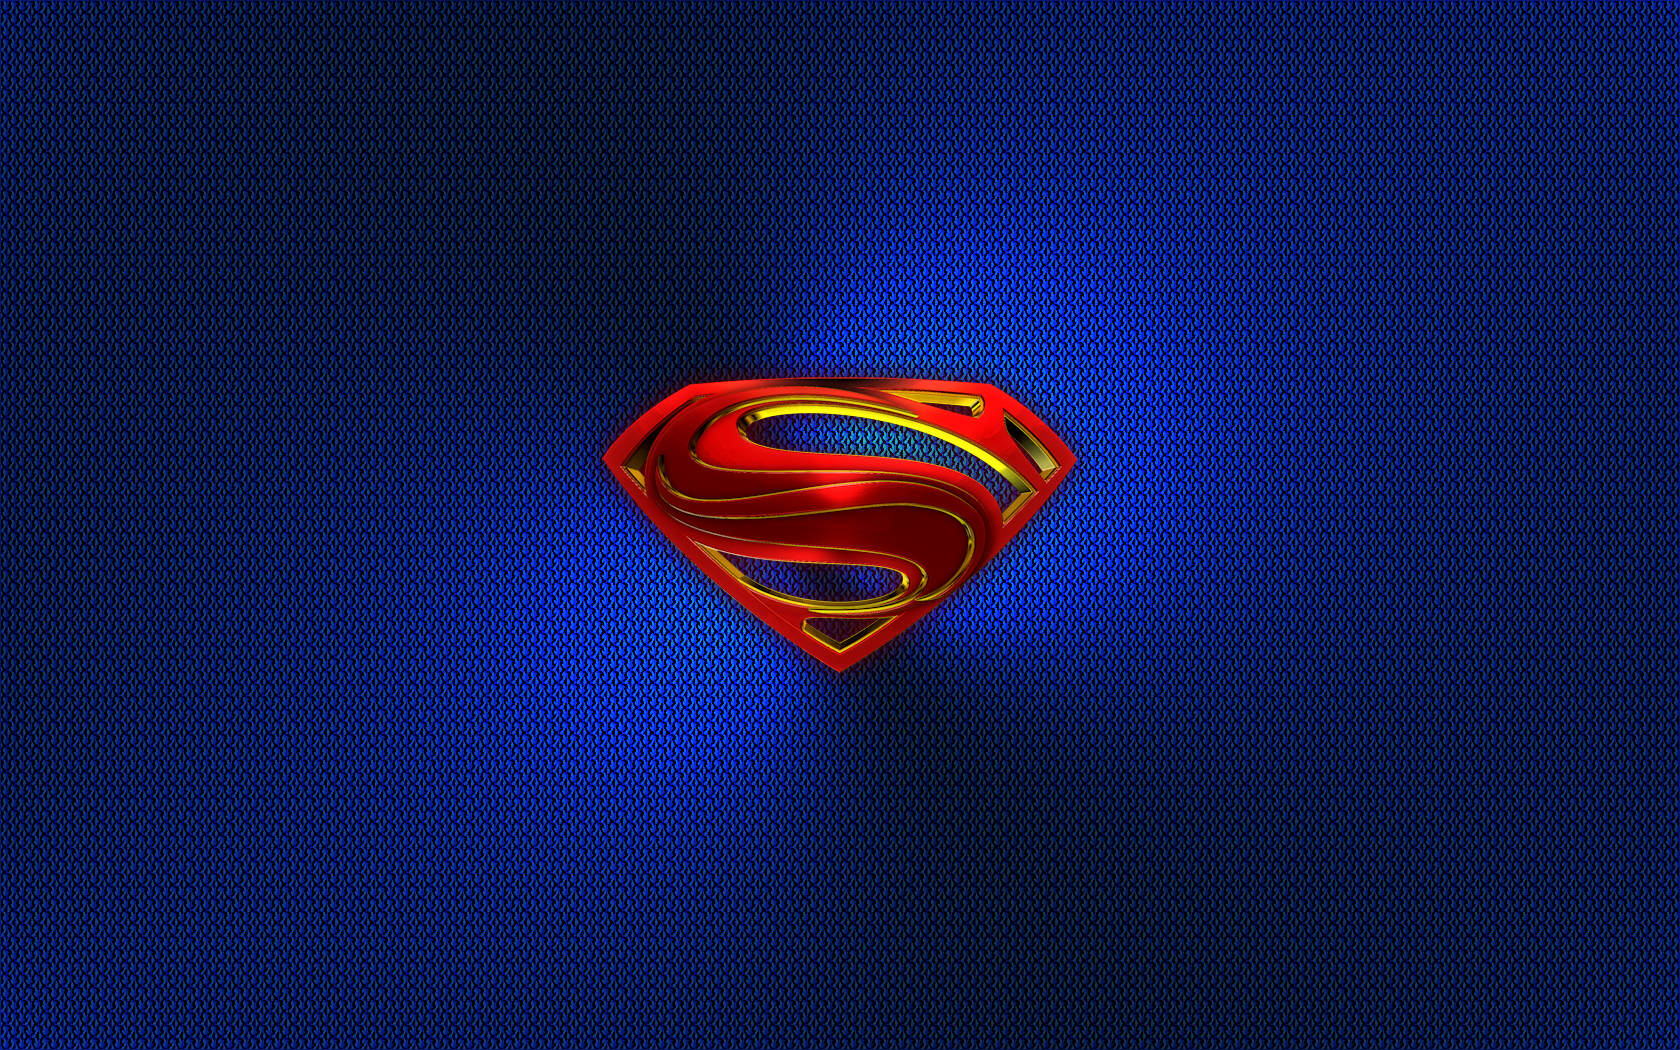 Superman The Man Of Steel 3D Emblem Wall 01A By KingTracy